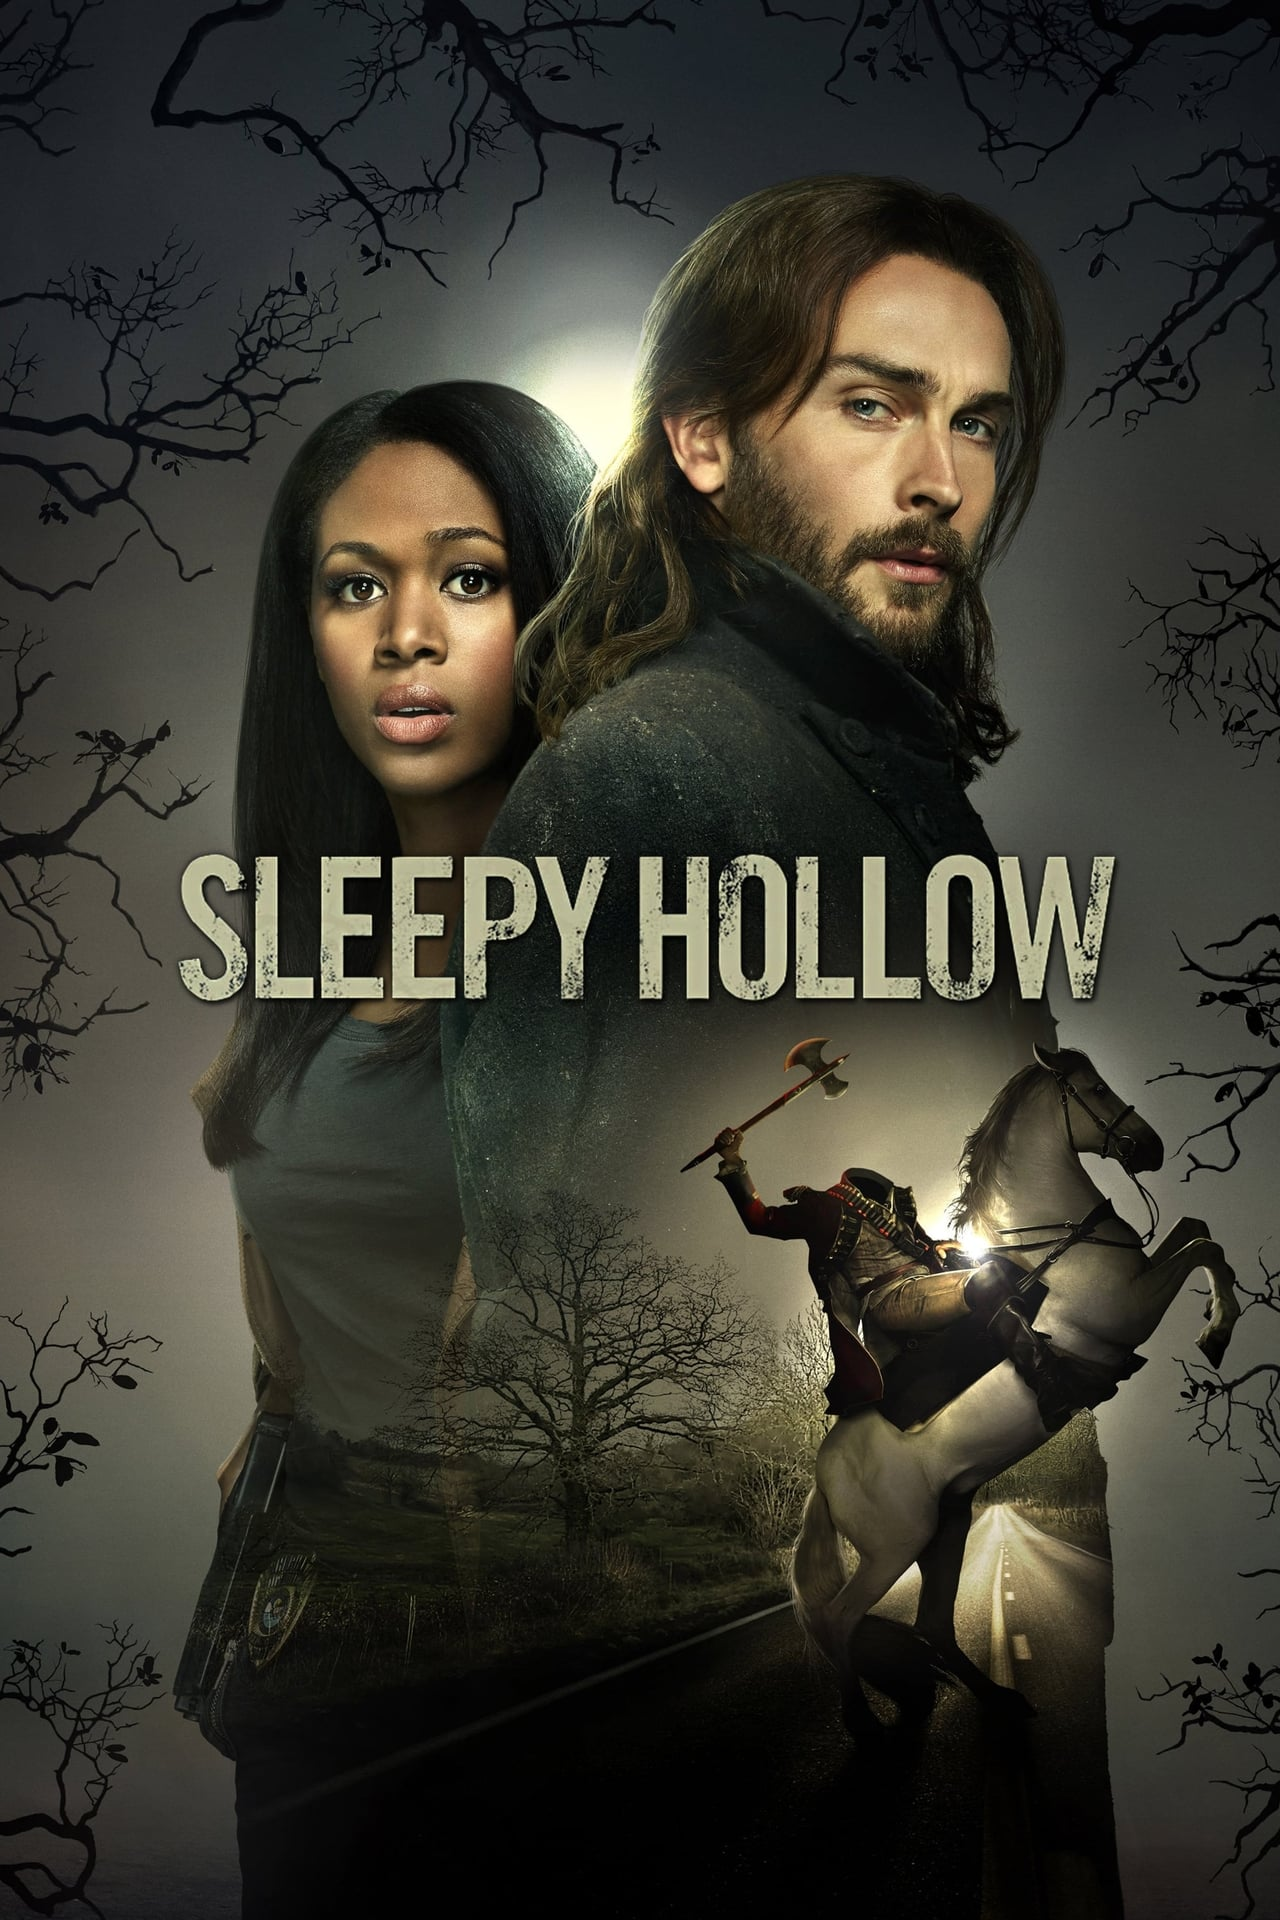 Ver Sleepy Hollow 2013 Online Latino Hd Pelisplus